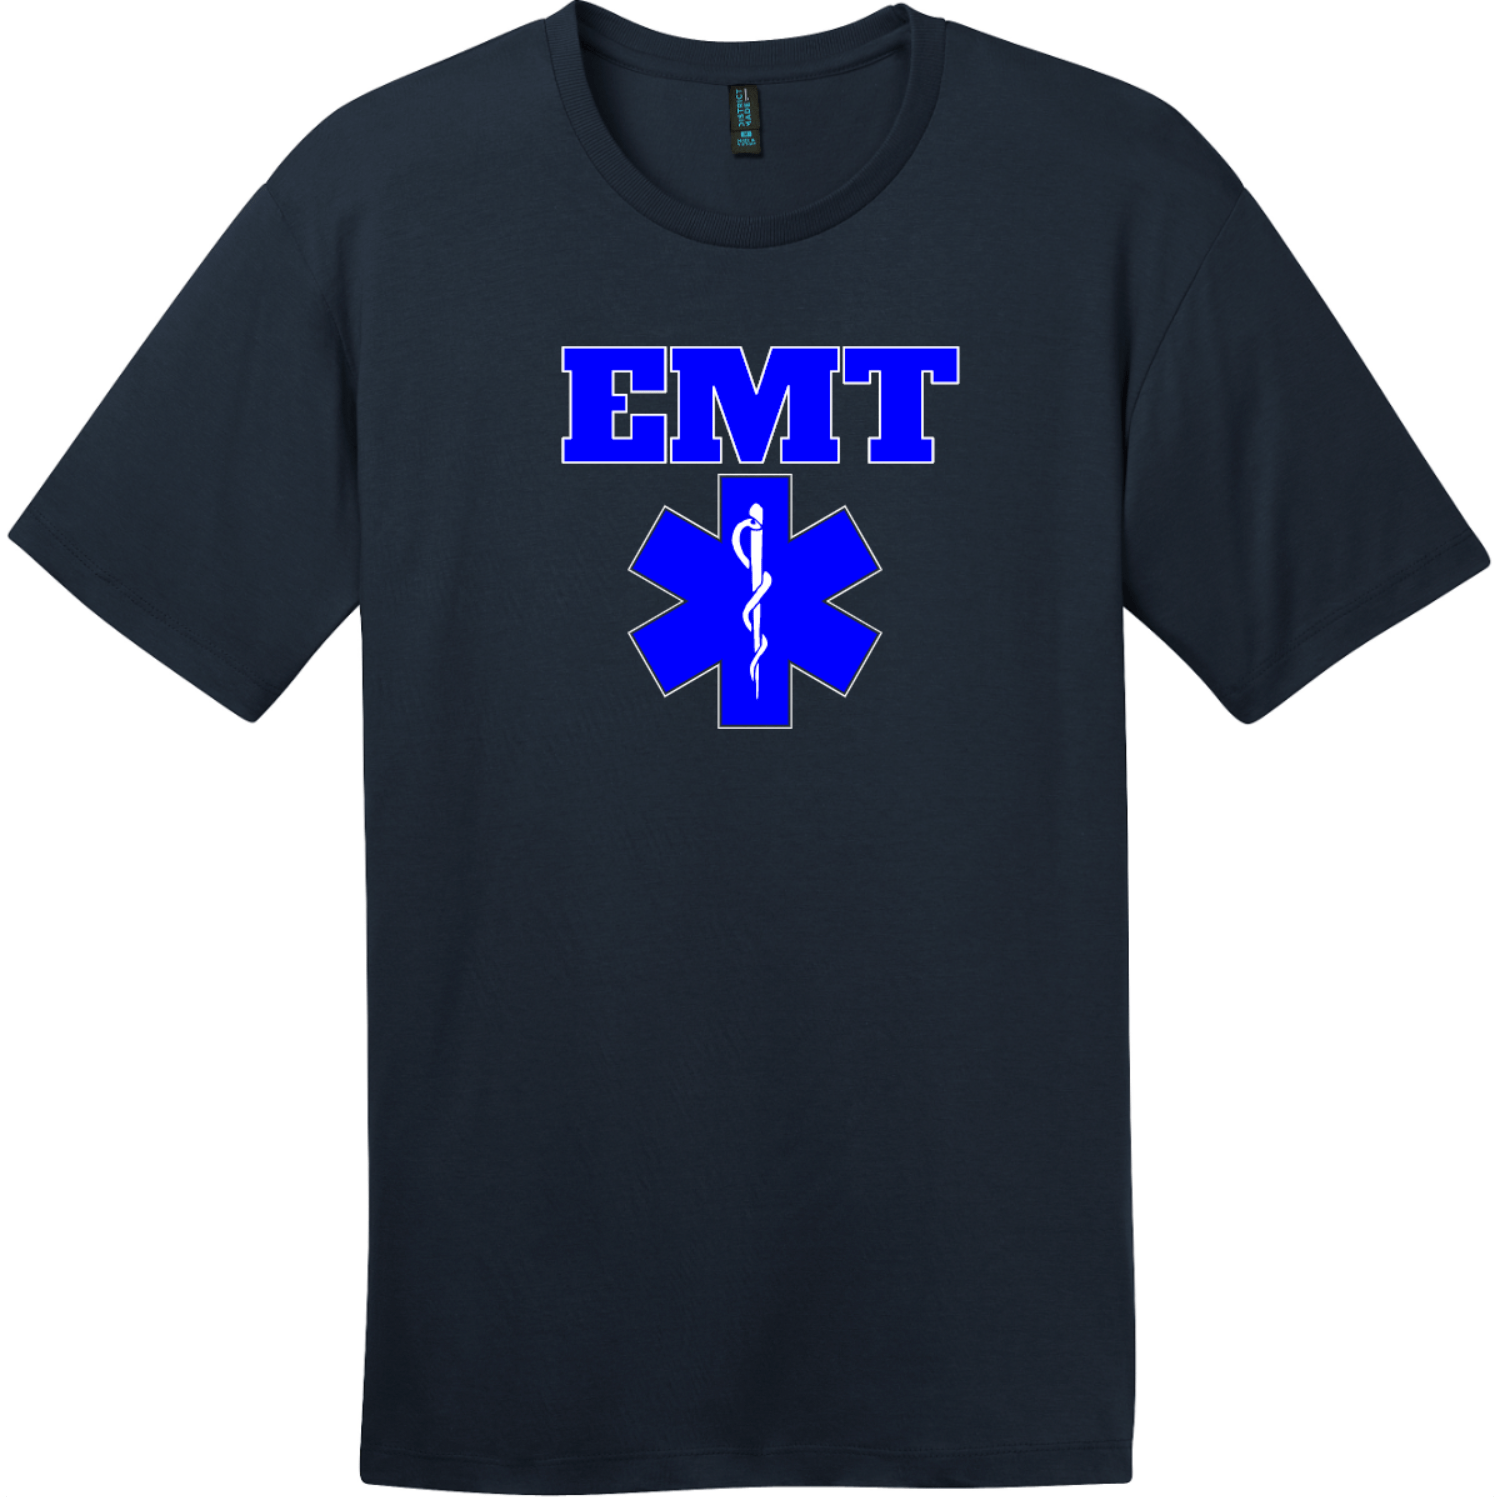 EMT Emergency Medical Technician T-Shirt New Navy District Perfect Weight Tee DT104